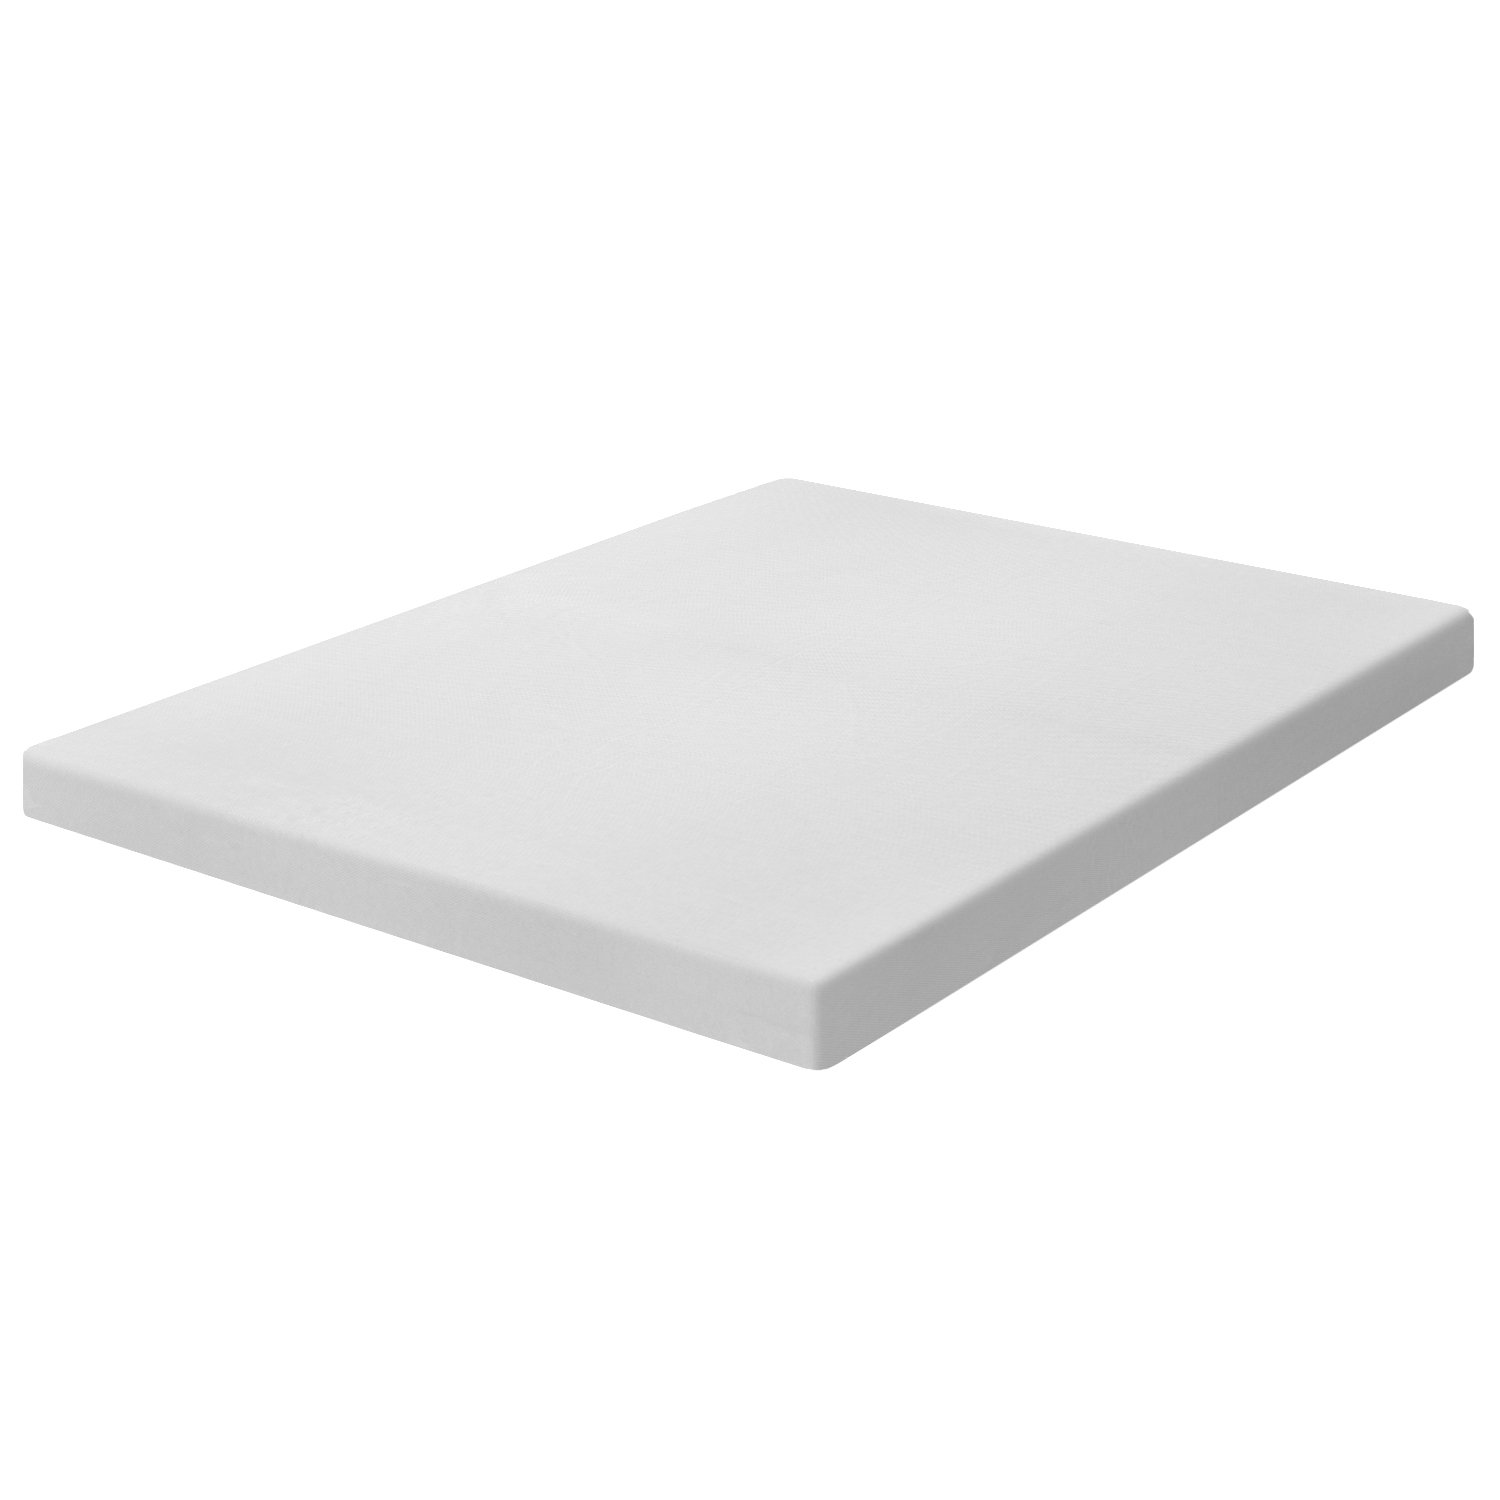 A queen memory foam mattress topper is probably the best option to go for.